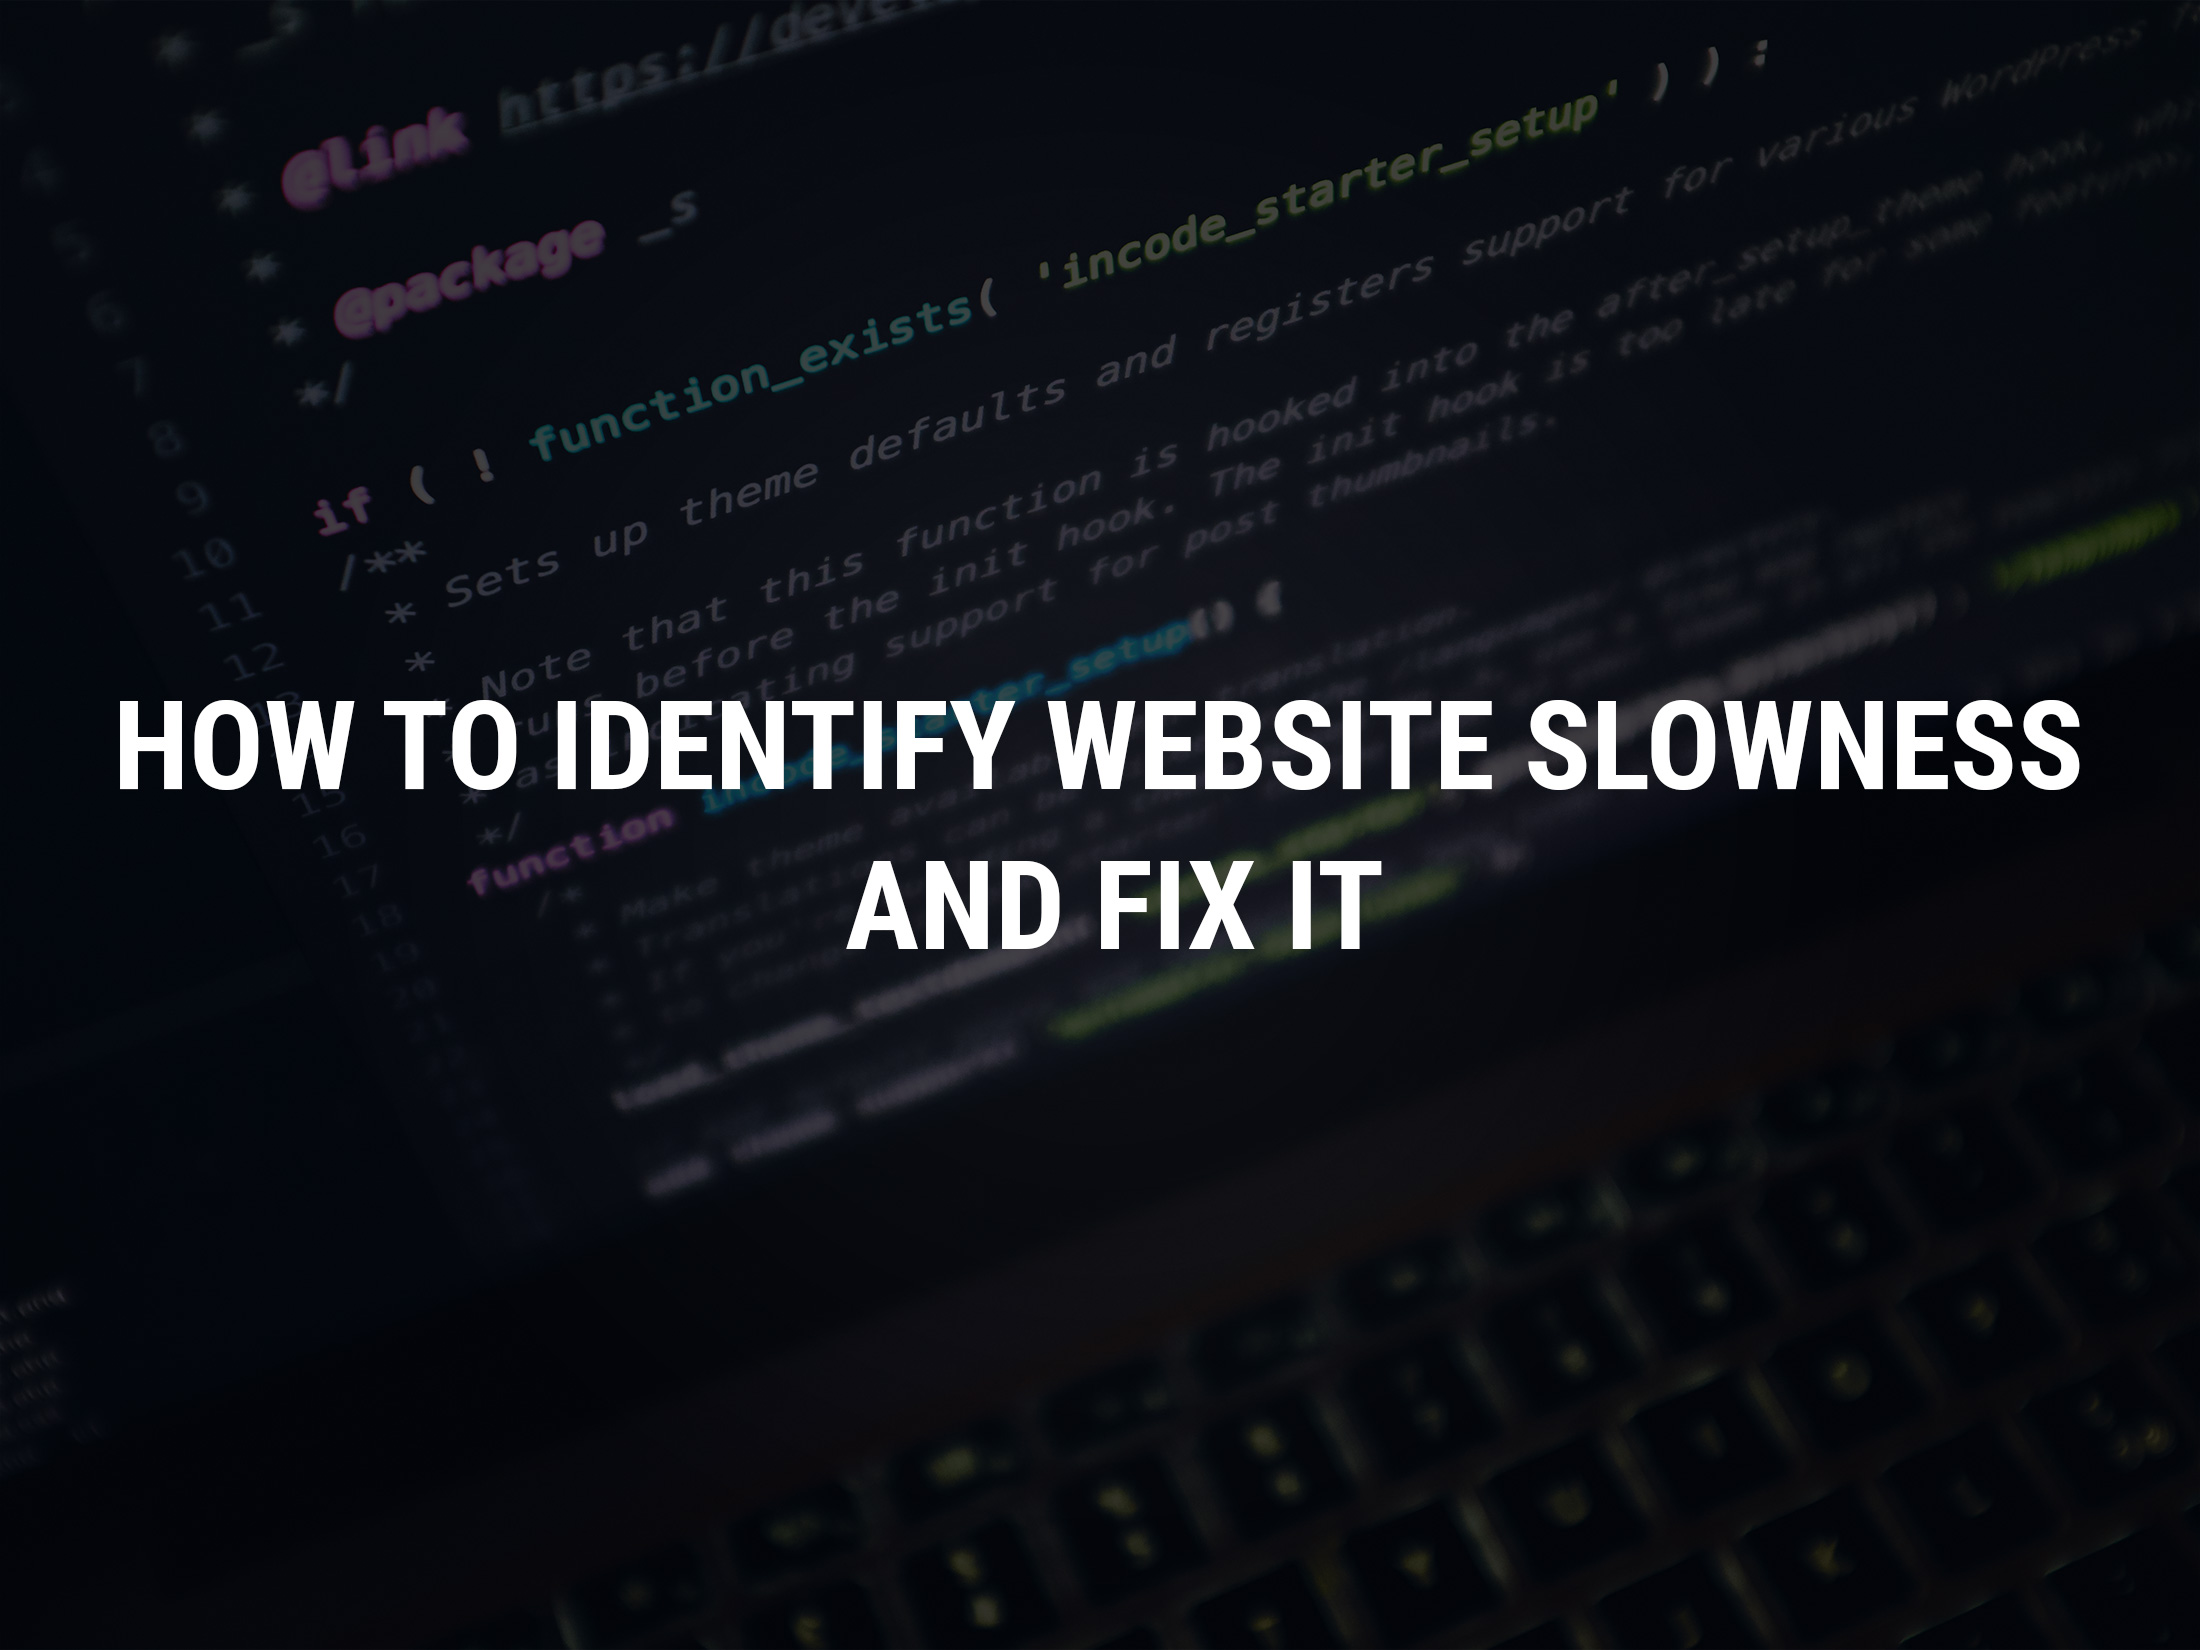 How to identify website slowness and fix it